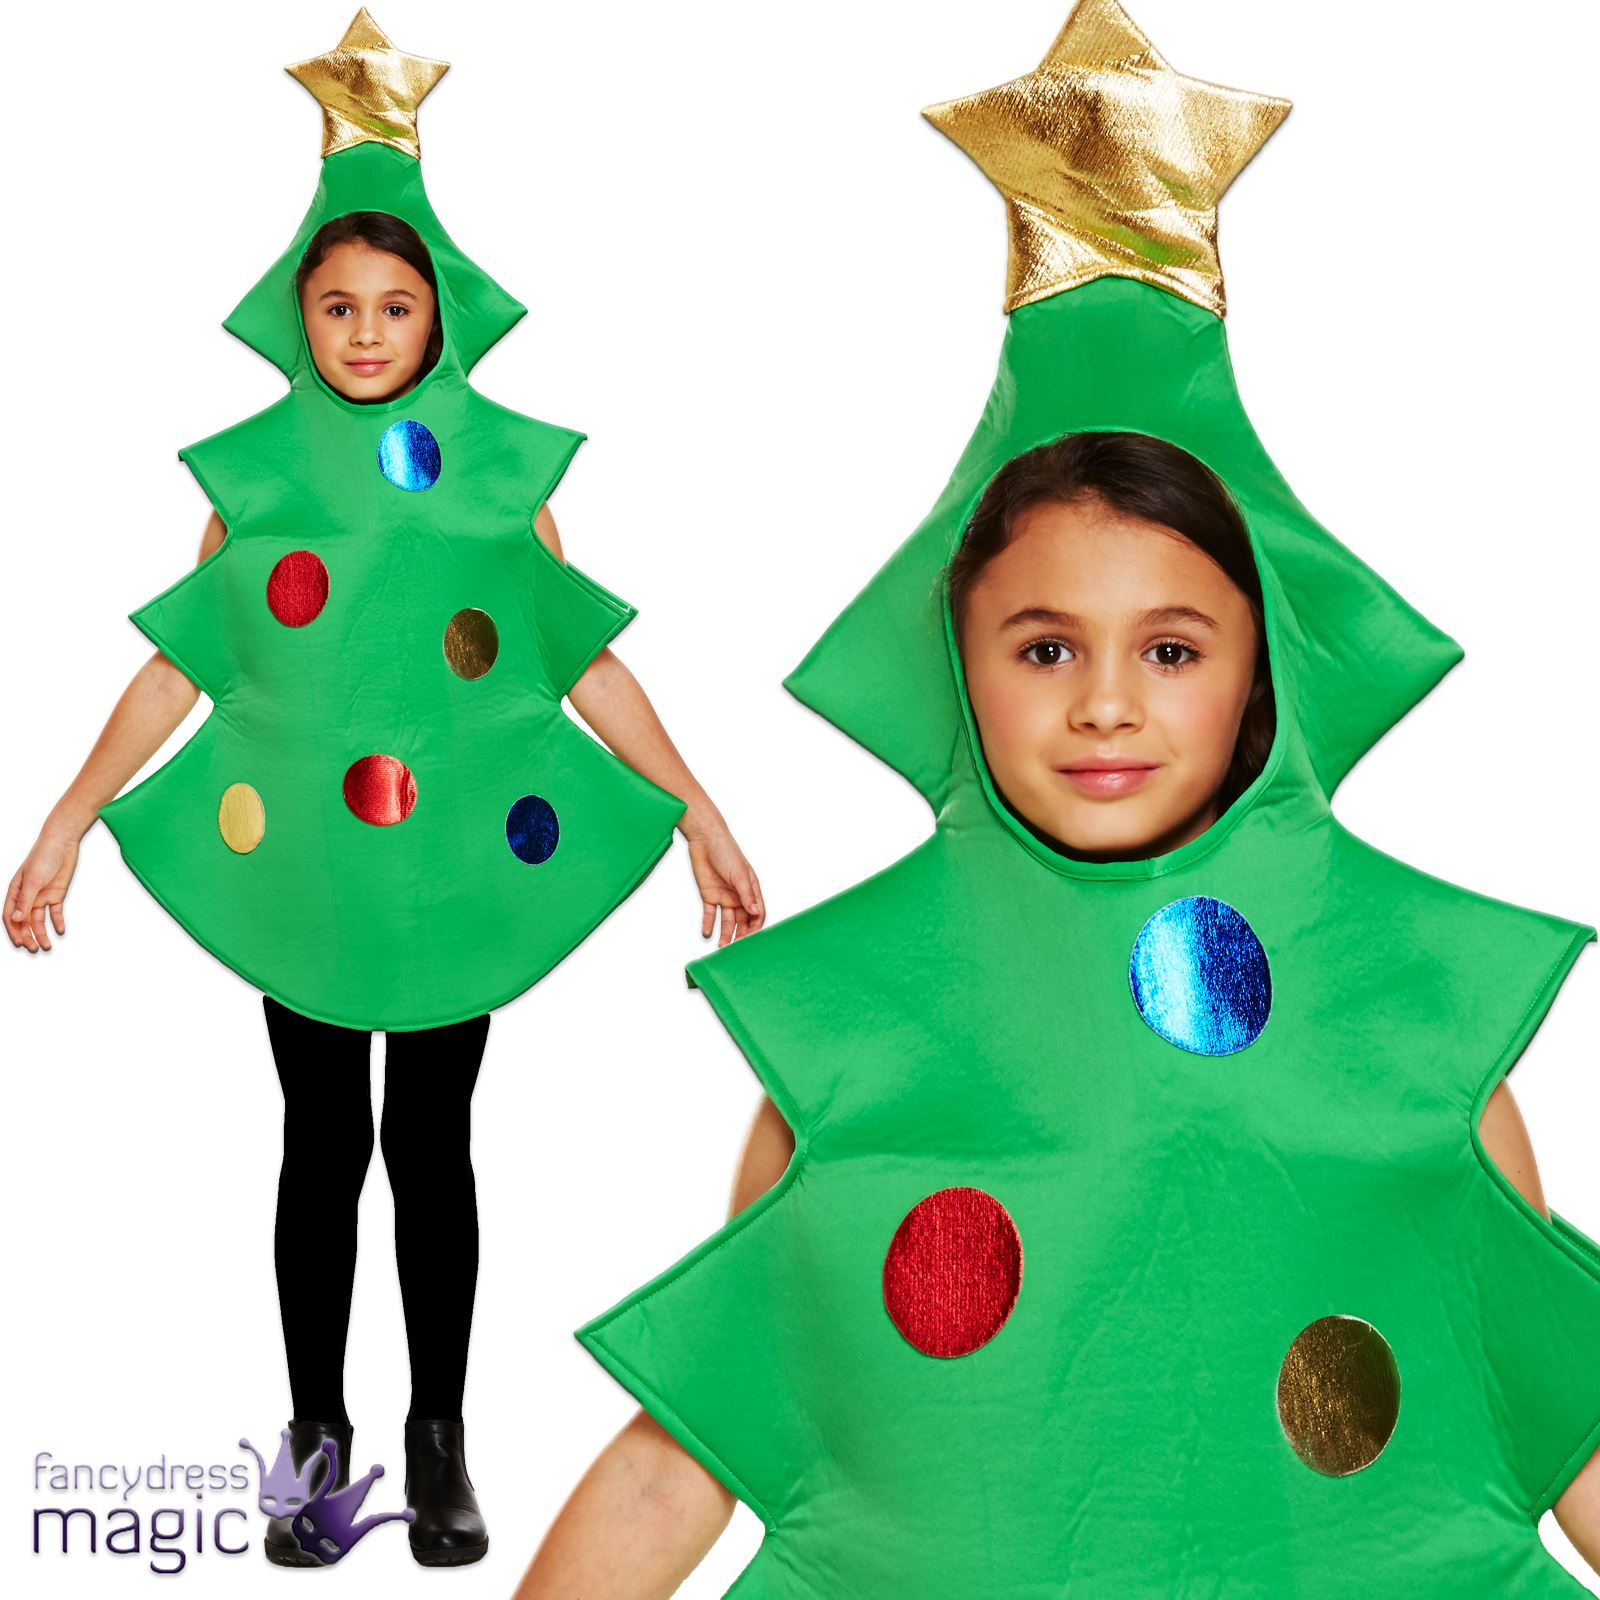 Your little one will do a better job than Buddy the Elf at spreading Christmas cheer, in this festive fancy dress costume. It's designed to look just like Will Ferrell's uniform from the film that's become a seasonal modern classic, then topped off with a cute elf hat.